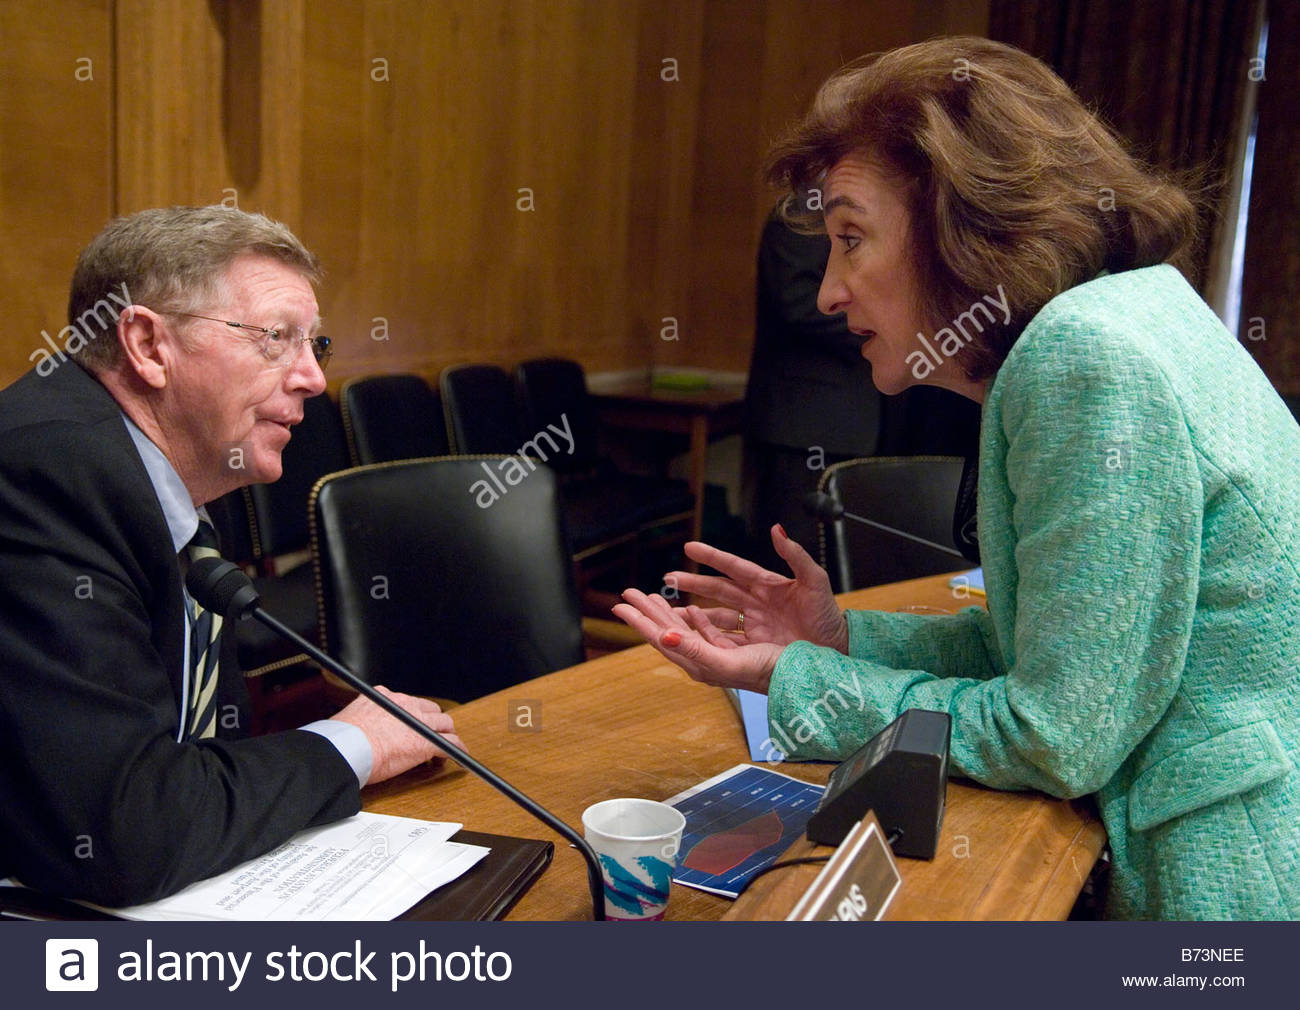 03 28 06 Chairman Conrad Burns R Mont and Federal Aviation Administration FAA Administrator Marion C Blakey talk - Stock Image